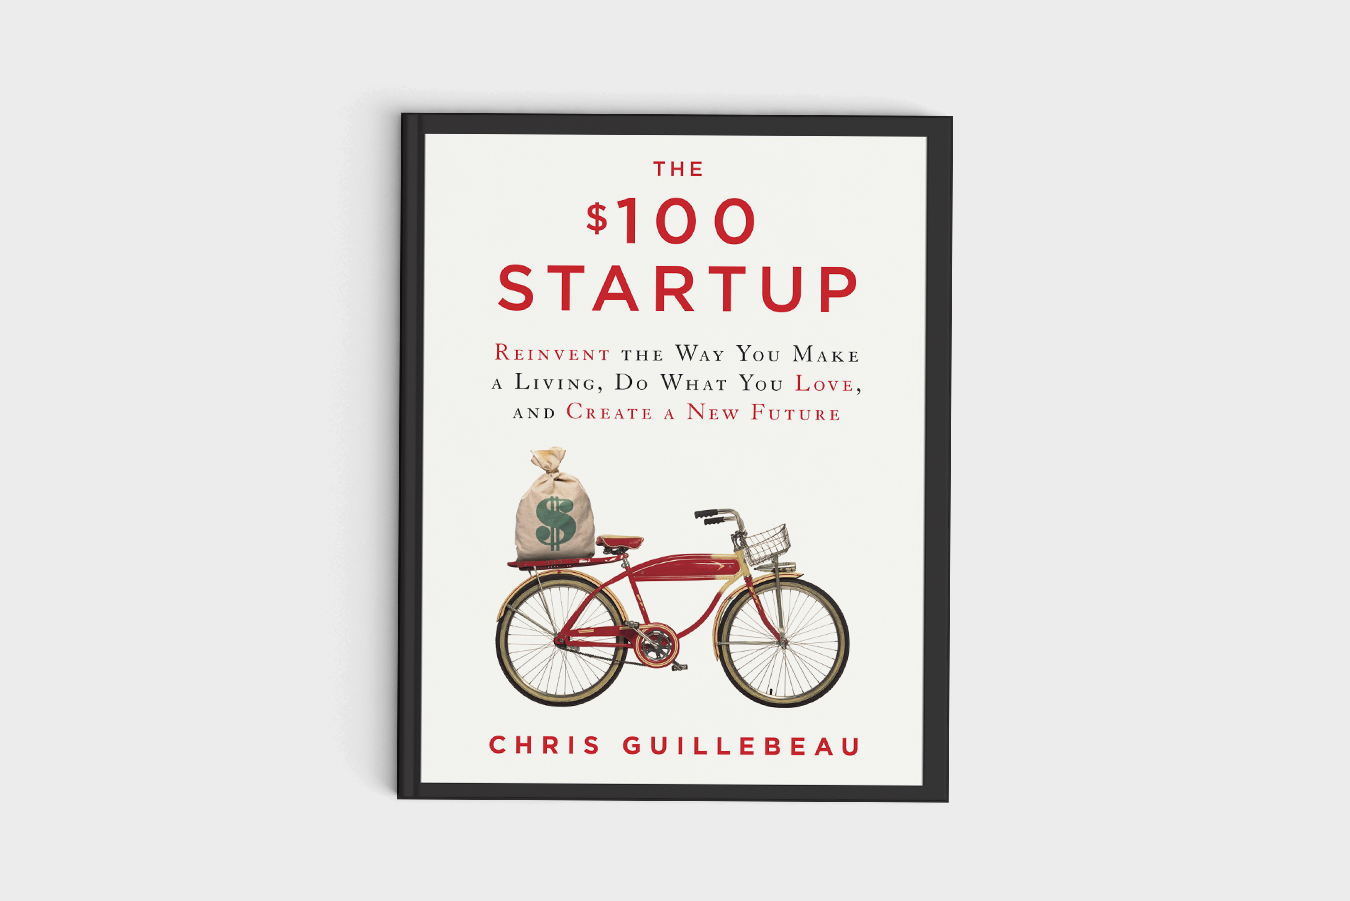 Chris Guillebeau Entrepreneurship